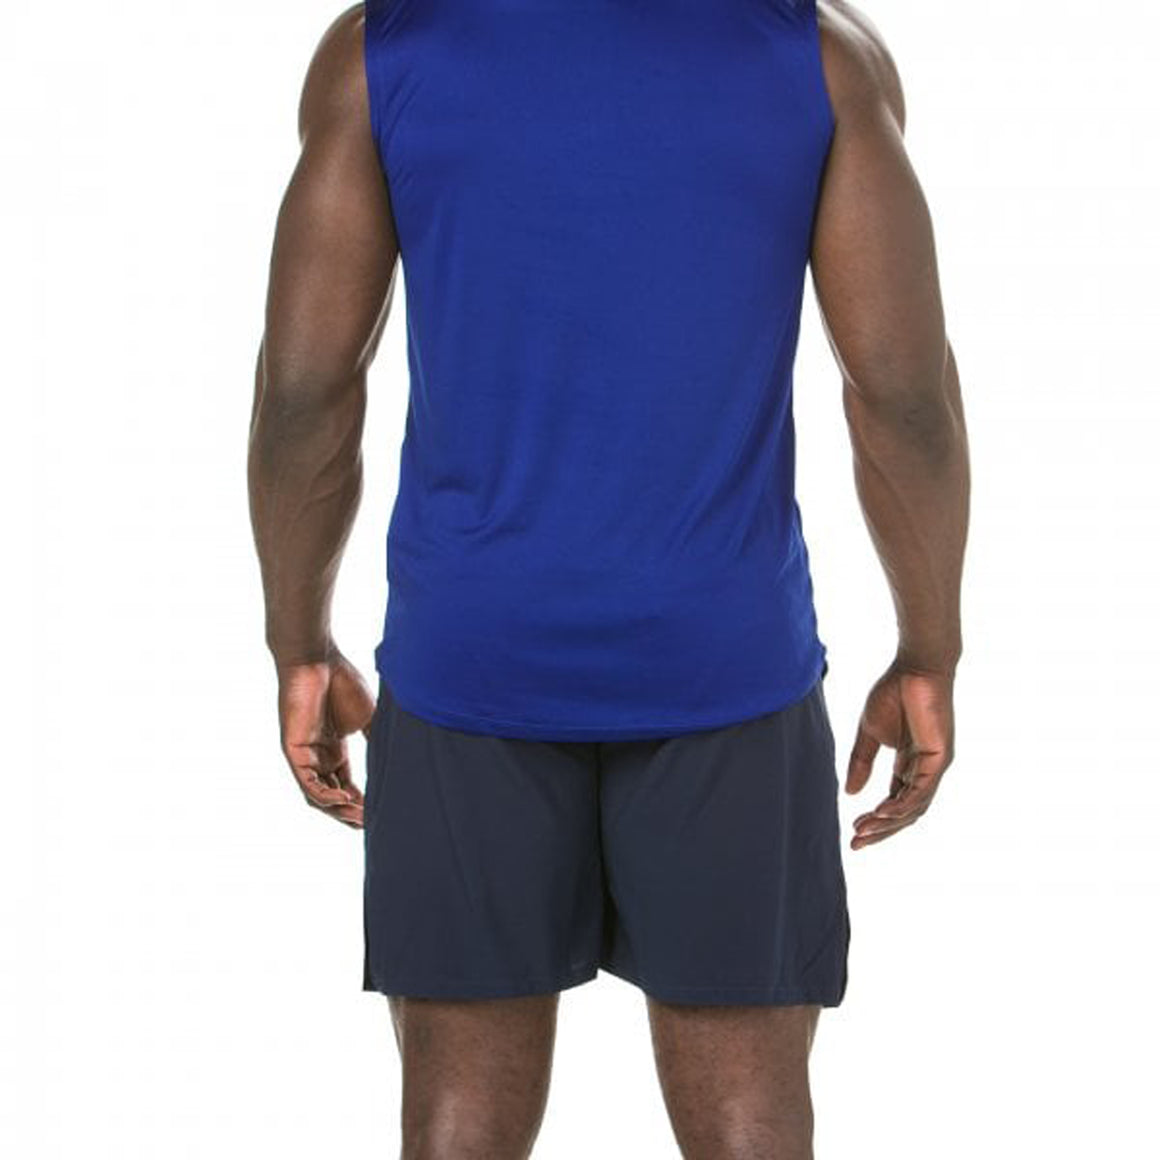 Vapodri Woven Gym Short for Men in Navy